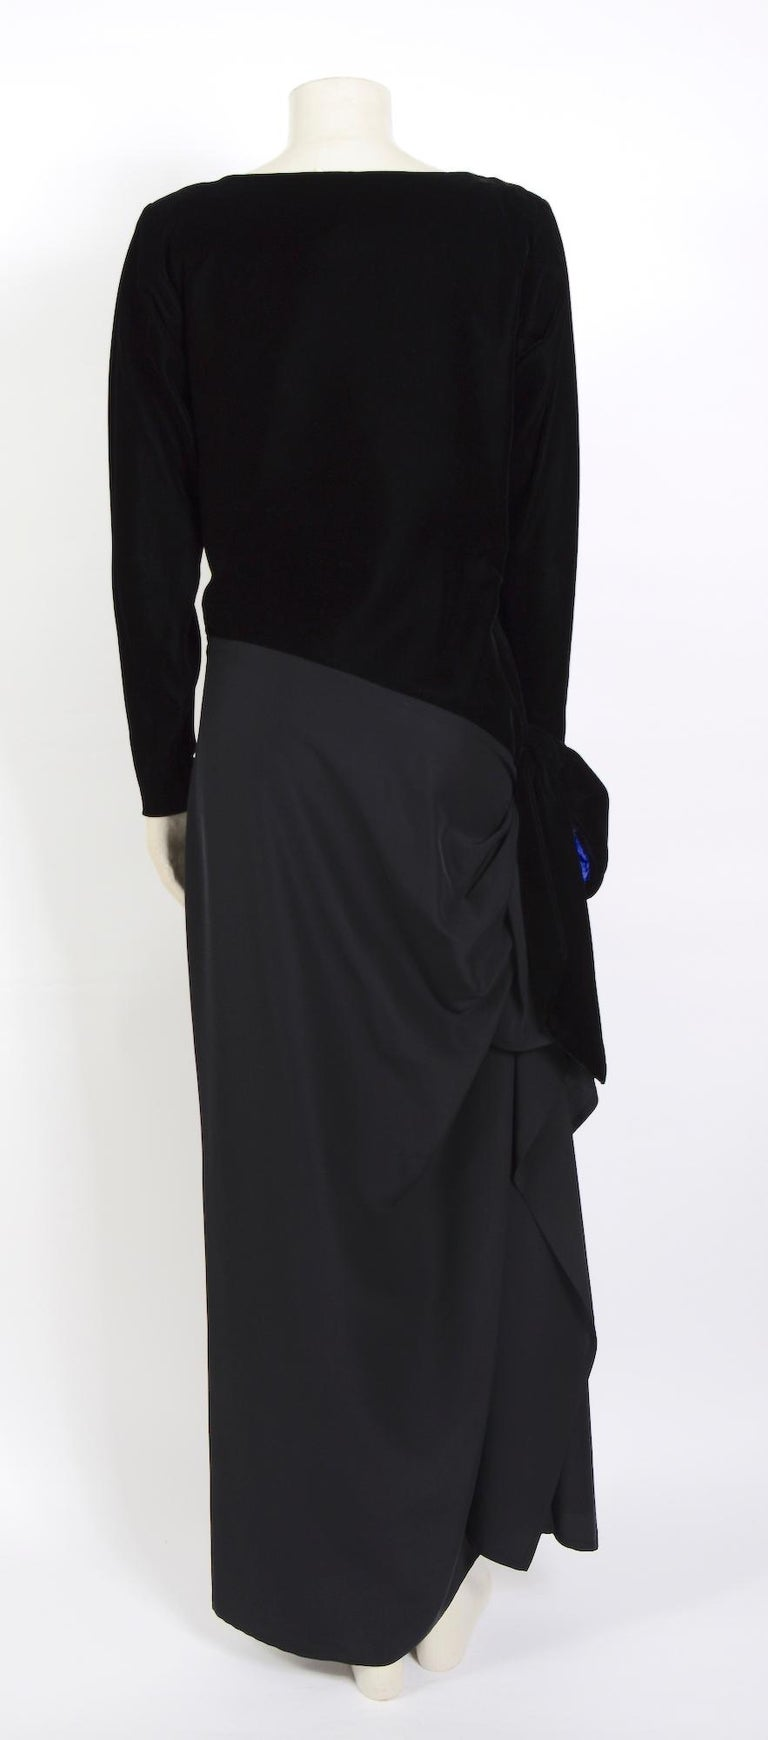 Yves Saint Laurent 1980s vintage black velvet and silk dress For Sale 3